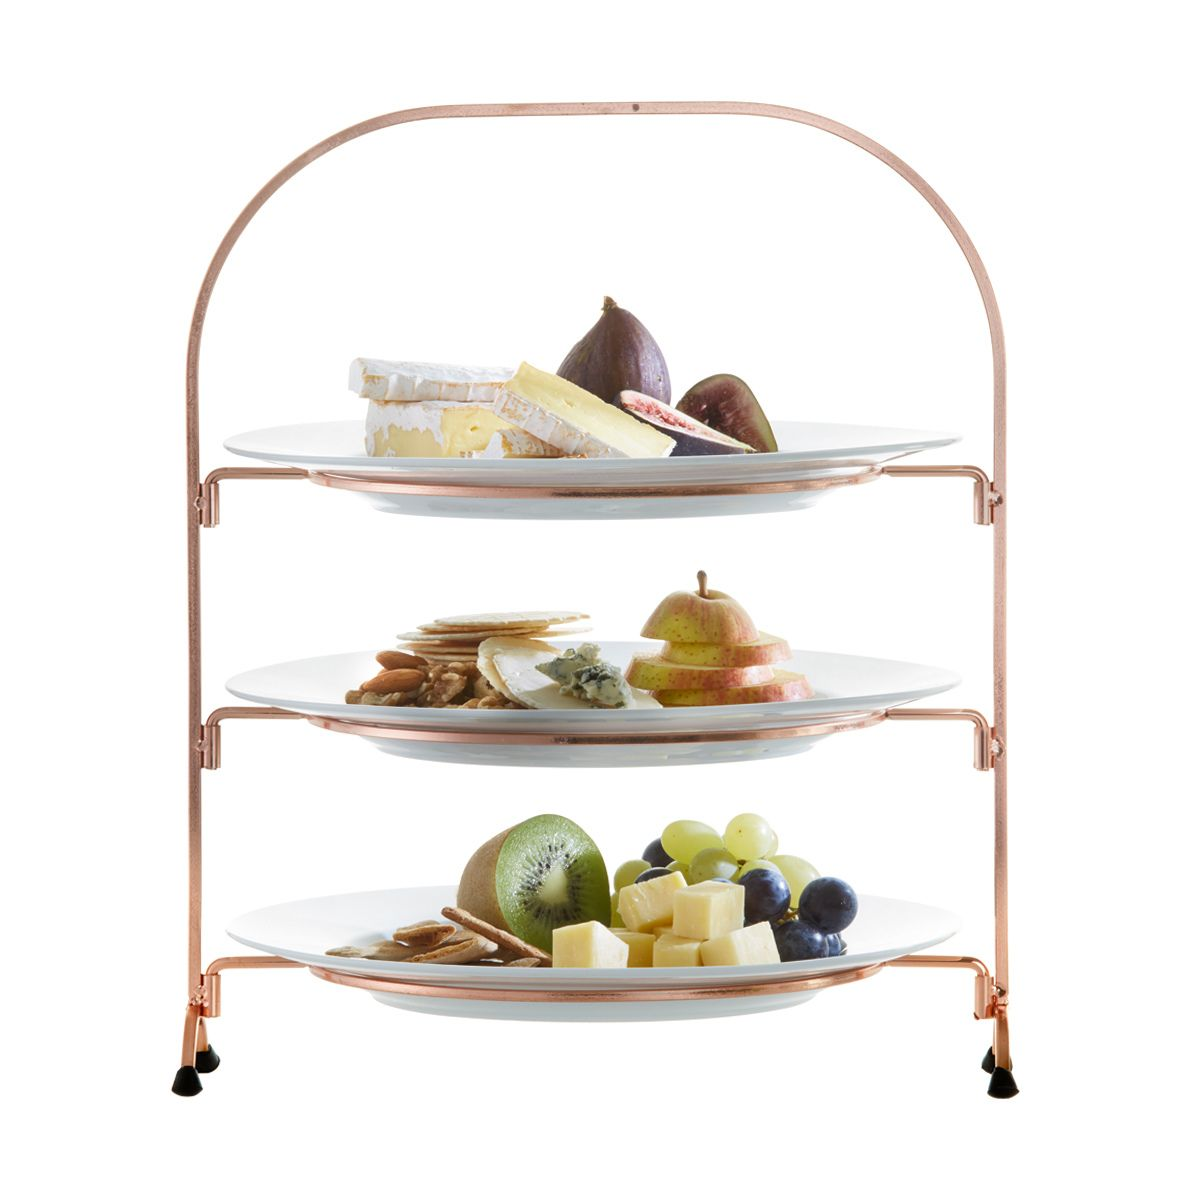 Wire 3 Tier Stand With Plates | Kmart  sc 1 st  Pinterest & Wire 3 Tier Stand With Plates | Kmart | Kitchen | Pinterest | Tiered ...